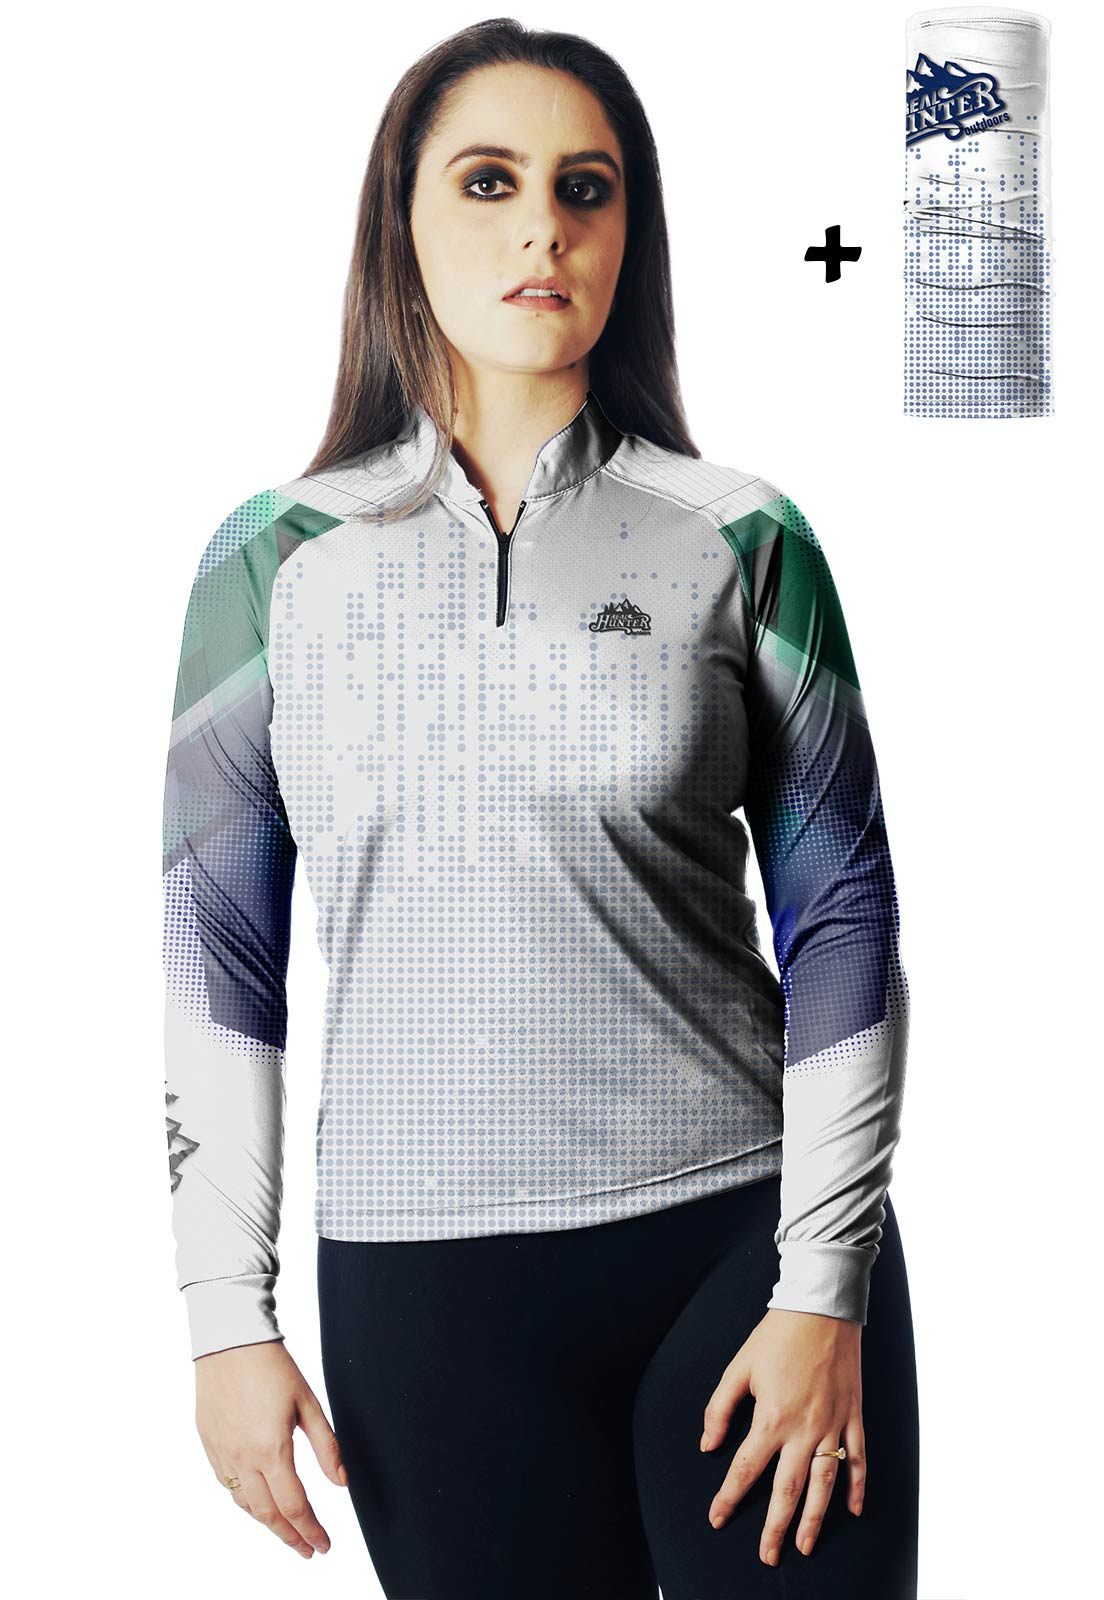 CAMISA DE PESCA FISH TECH PRO 02 FEMININA + BANDANA GRÁTIS  - REAL HUNTER OUTDOORS